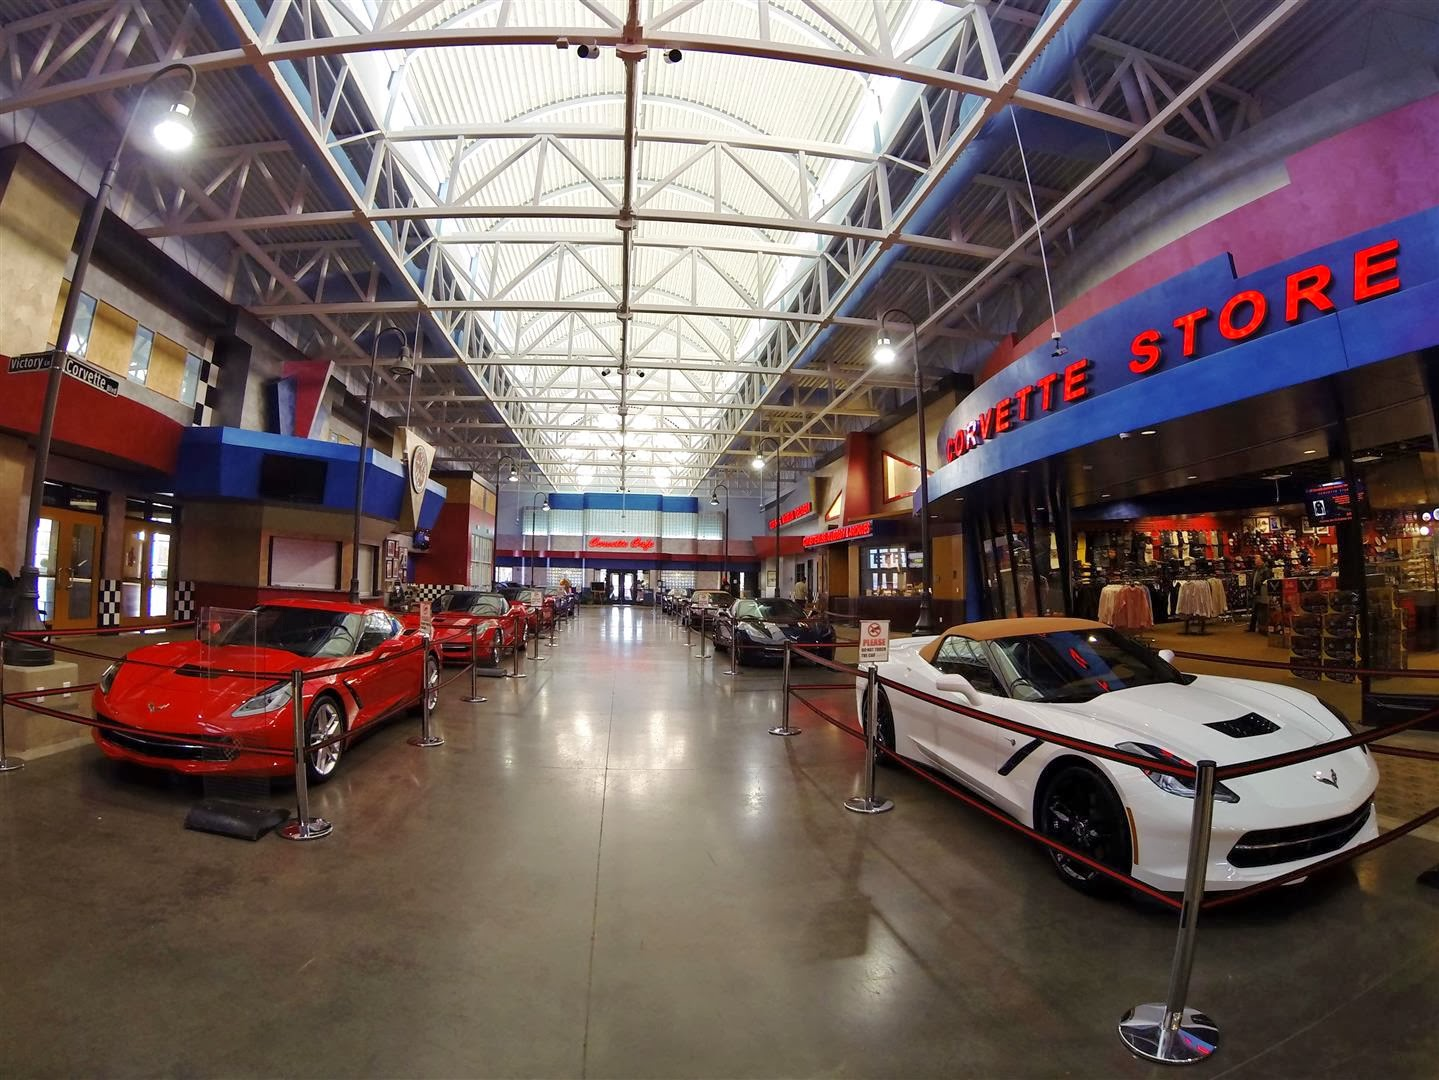 National Corvette Museum >> Countryside Food Rides: National Corvette Museum (Bowling Green, KY)